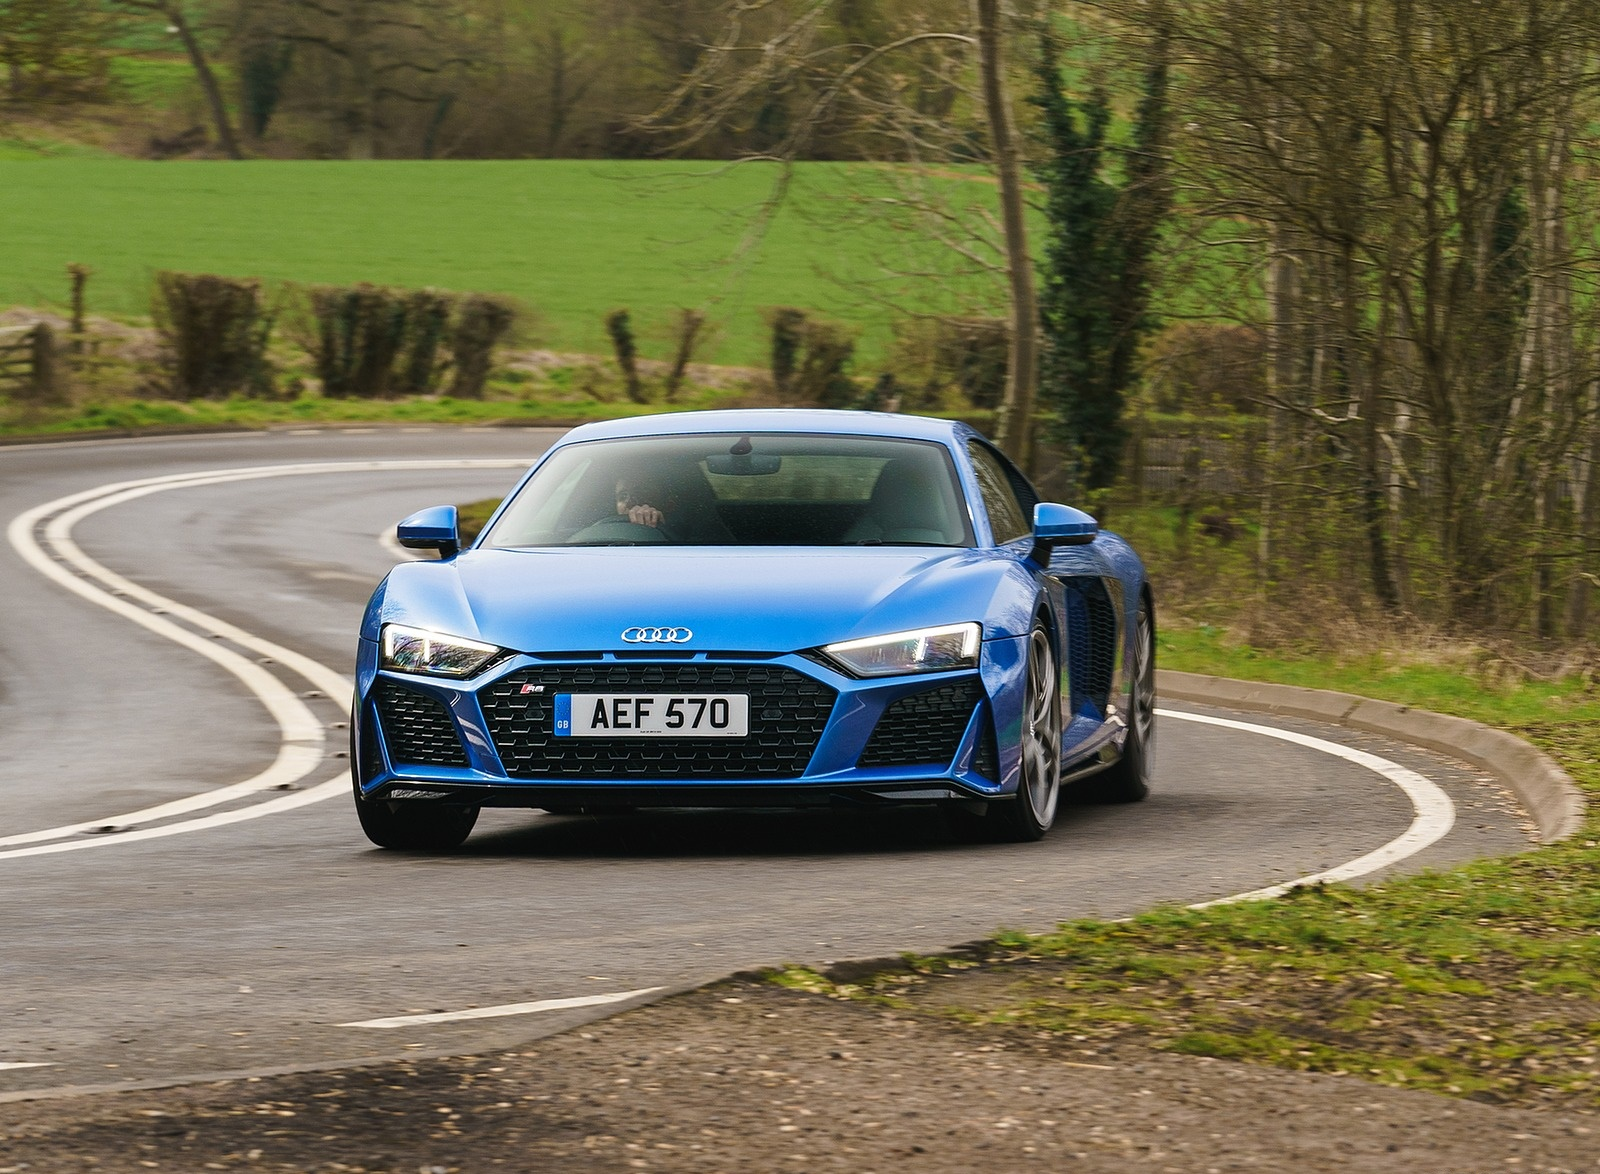 2019 Audi R8 V10 Coupe quattro (UK-Spec) Front Wallpaper (1)